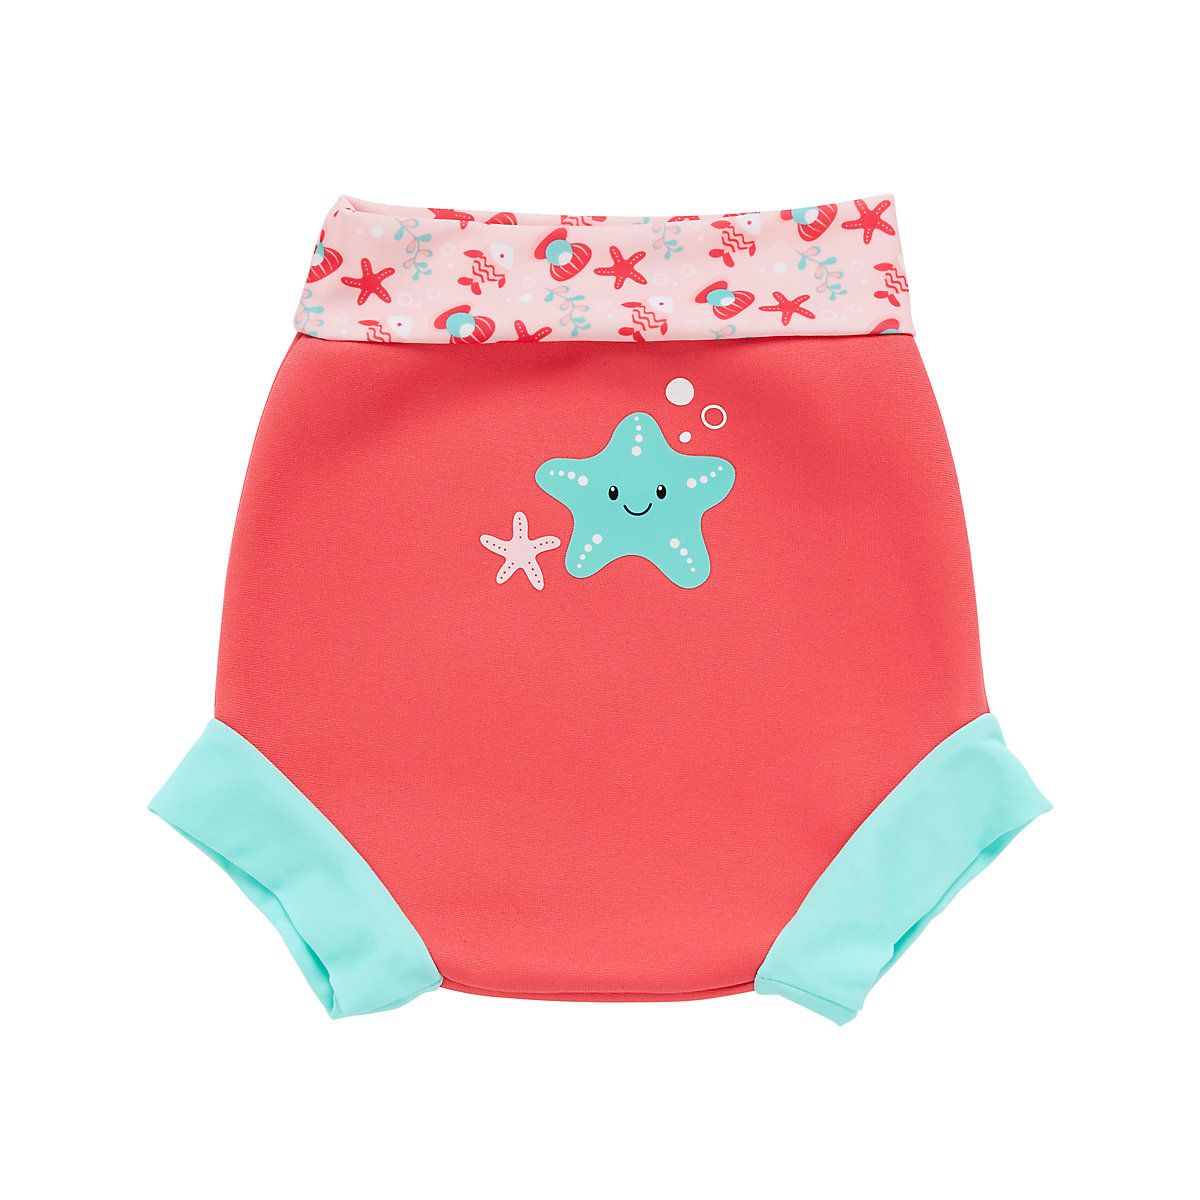 Mothercare Baby Nappy Cover Girls 9 12 Months